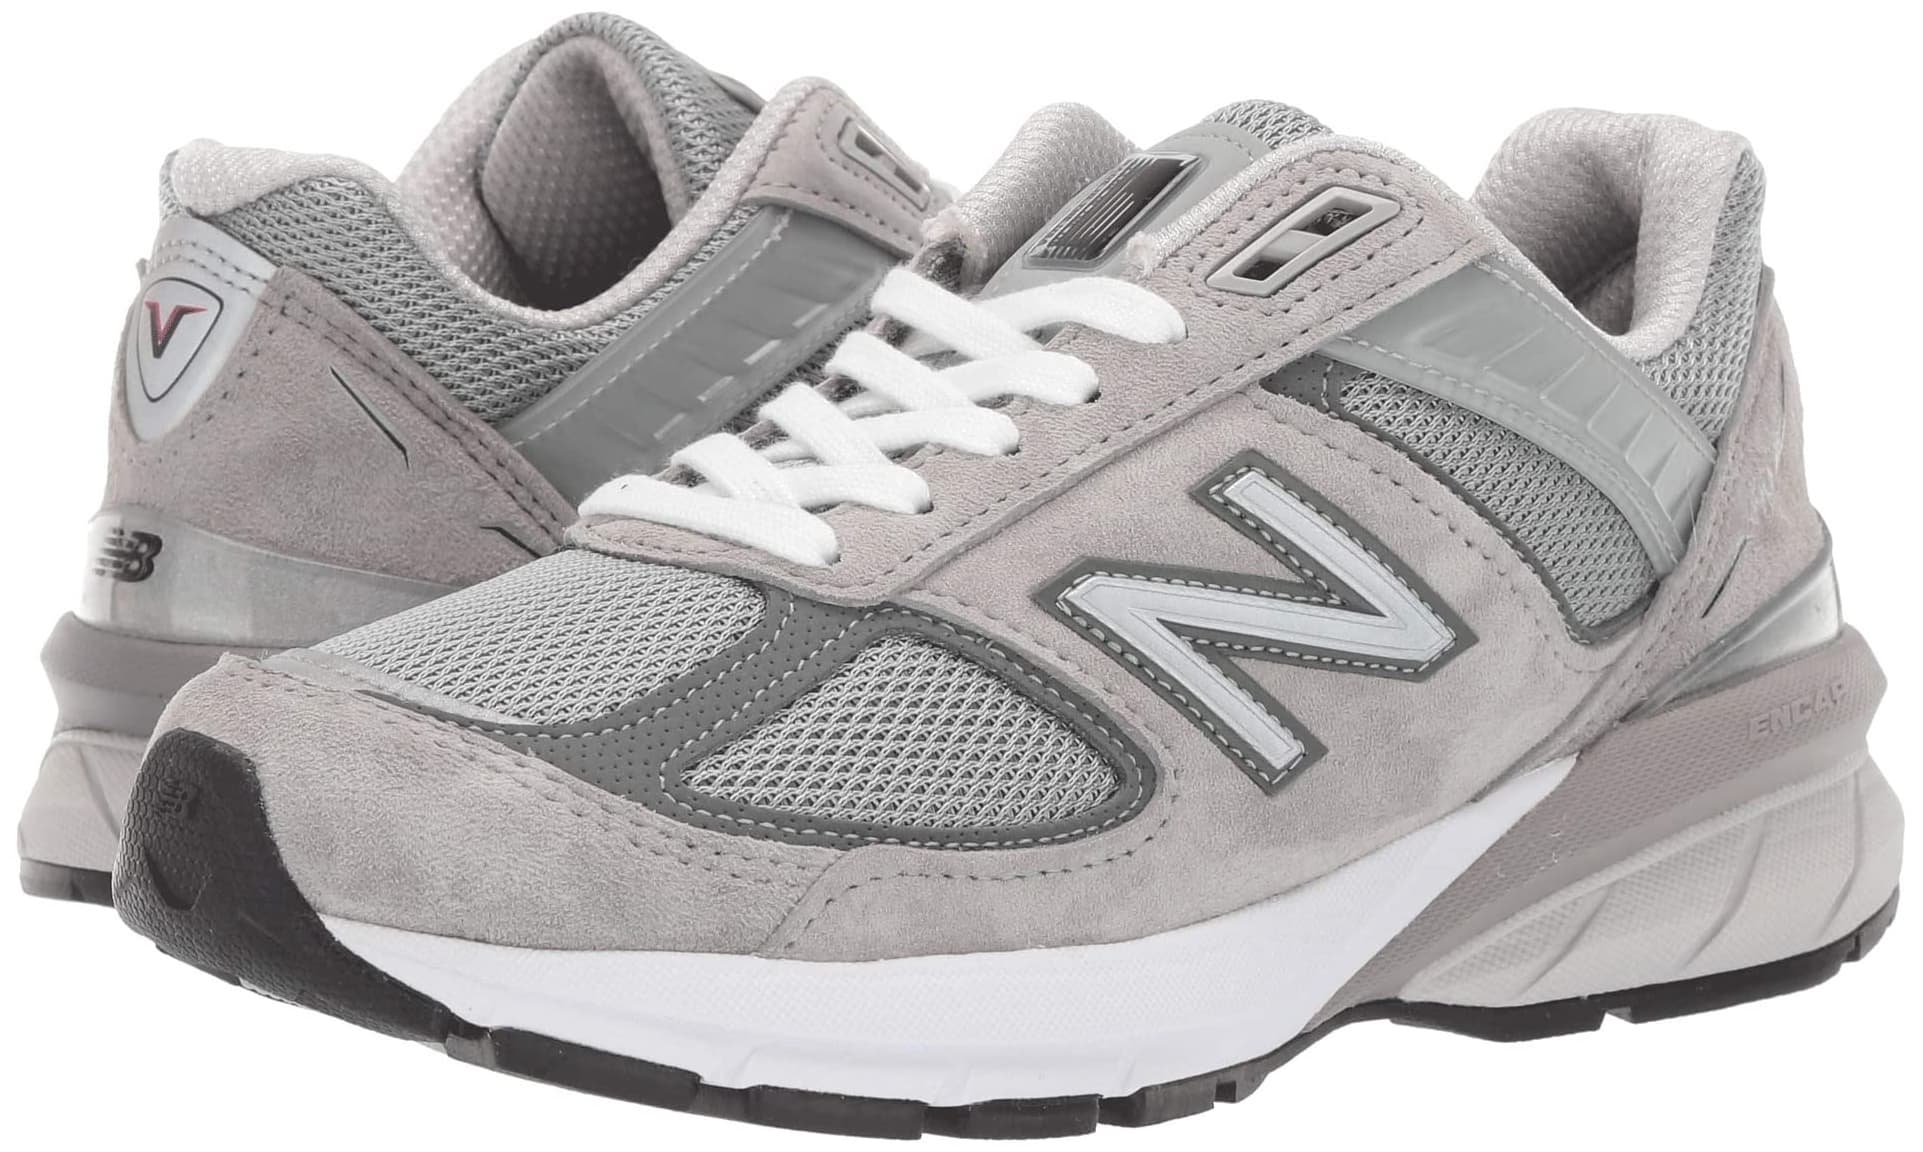 Designed for neutral runners, the New Balance 990V5 shoes features a timeless silhouette incorporated with modern technology